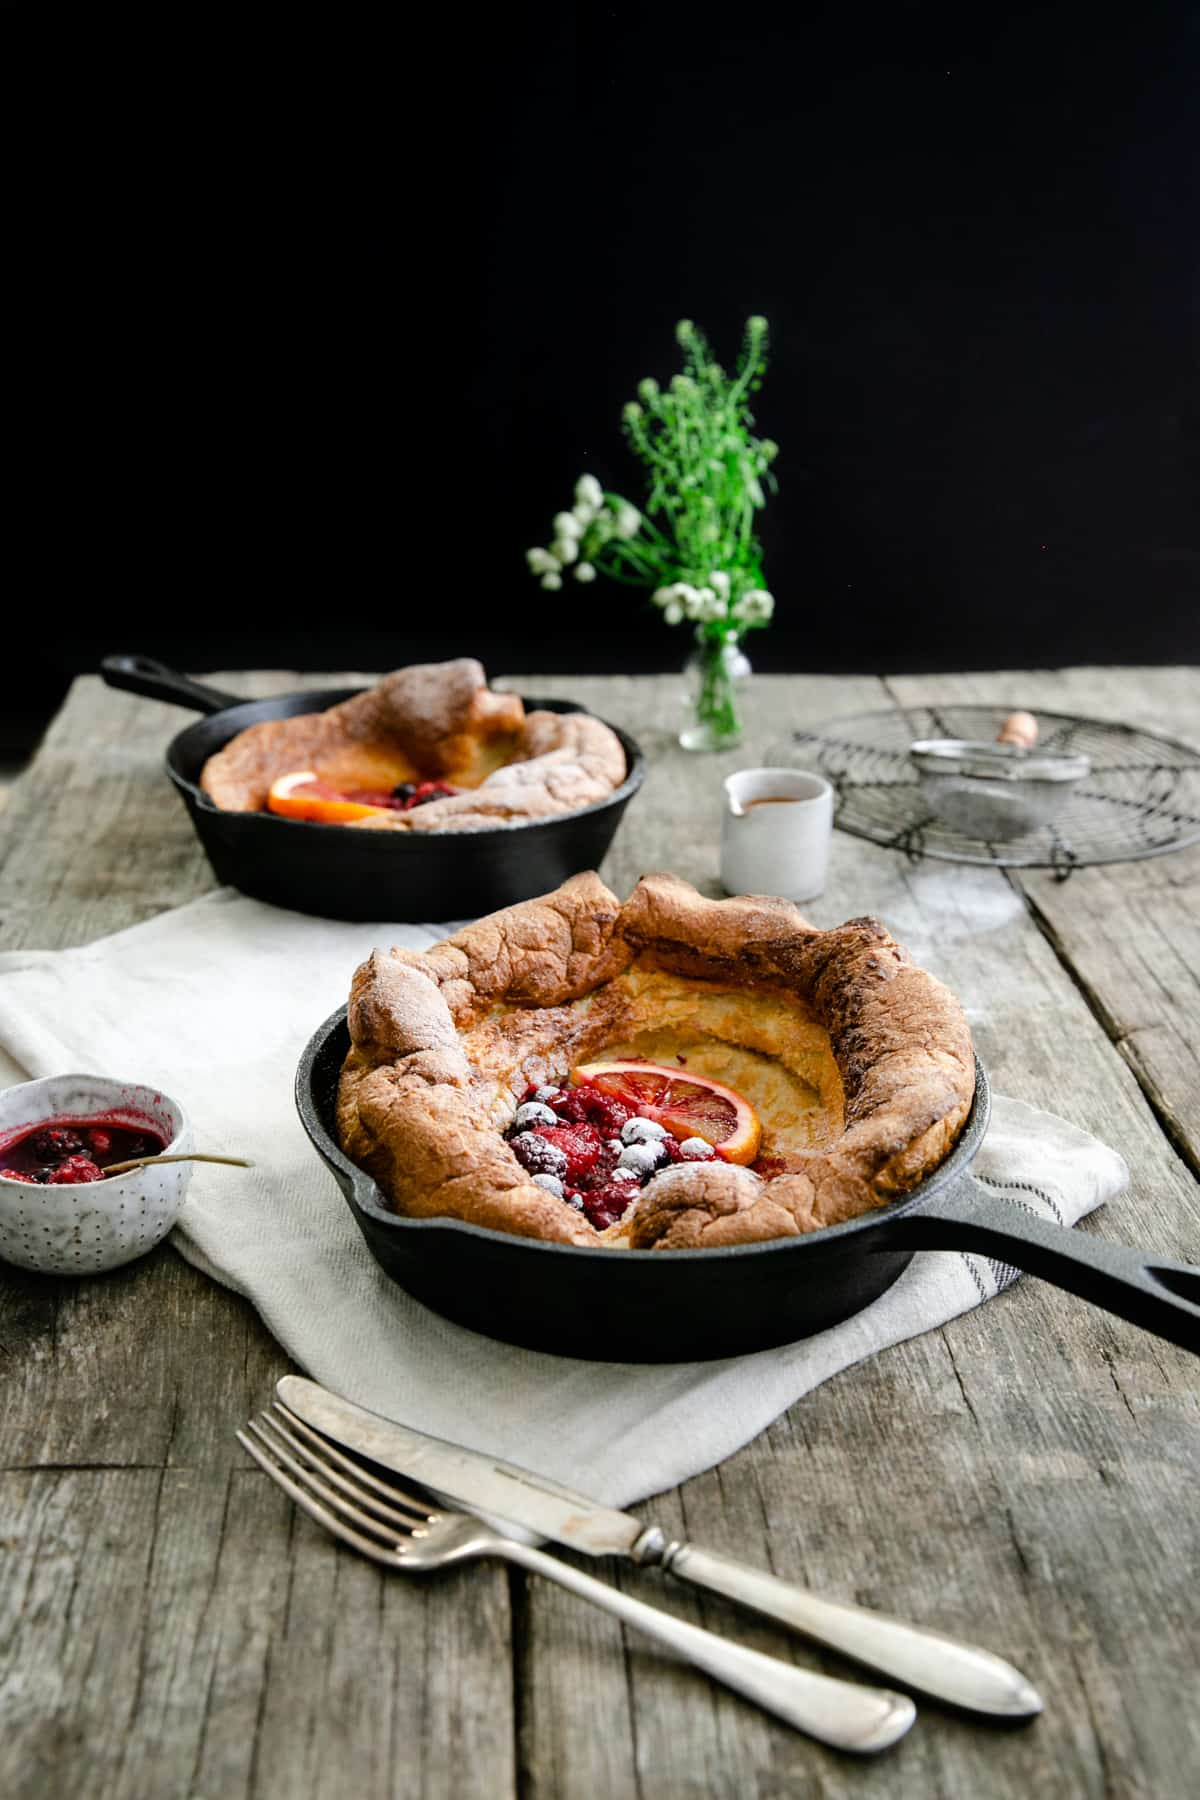 Two small skillets with mixed berry Dutch babies on a wooden table with